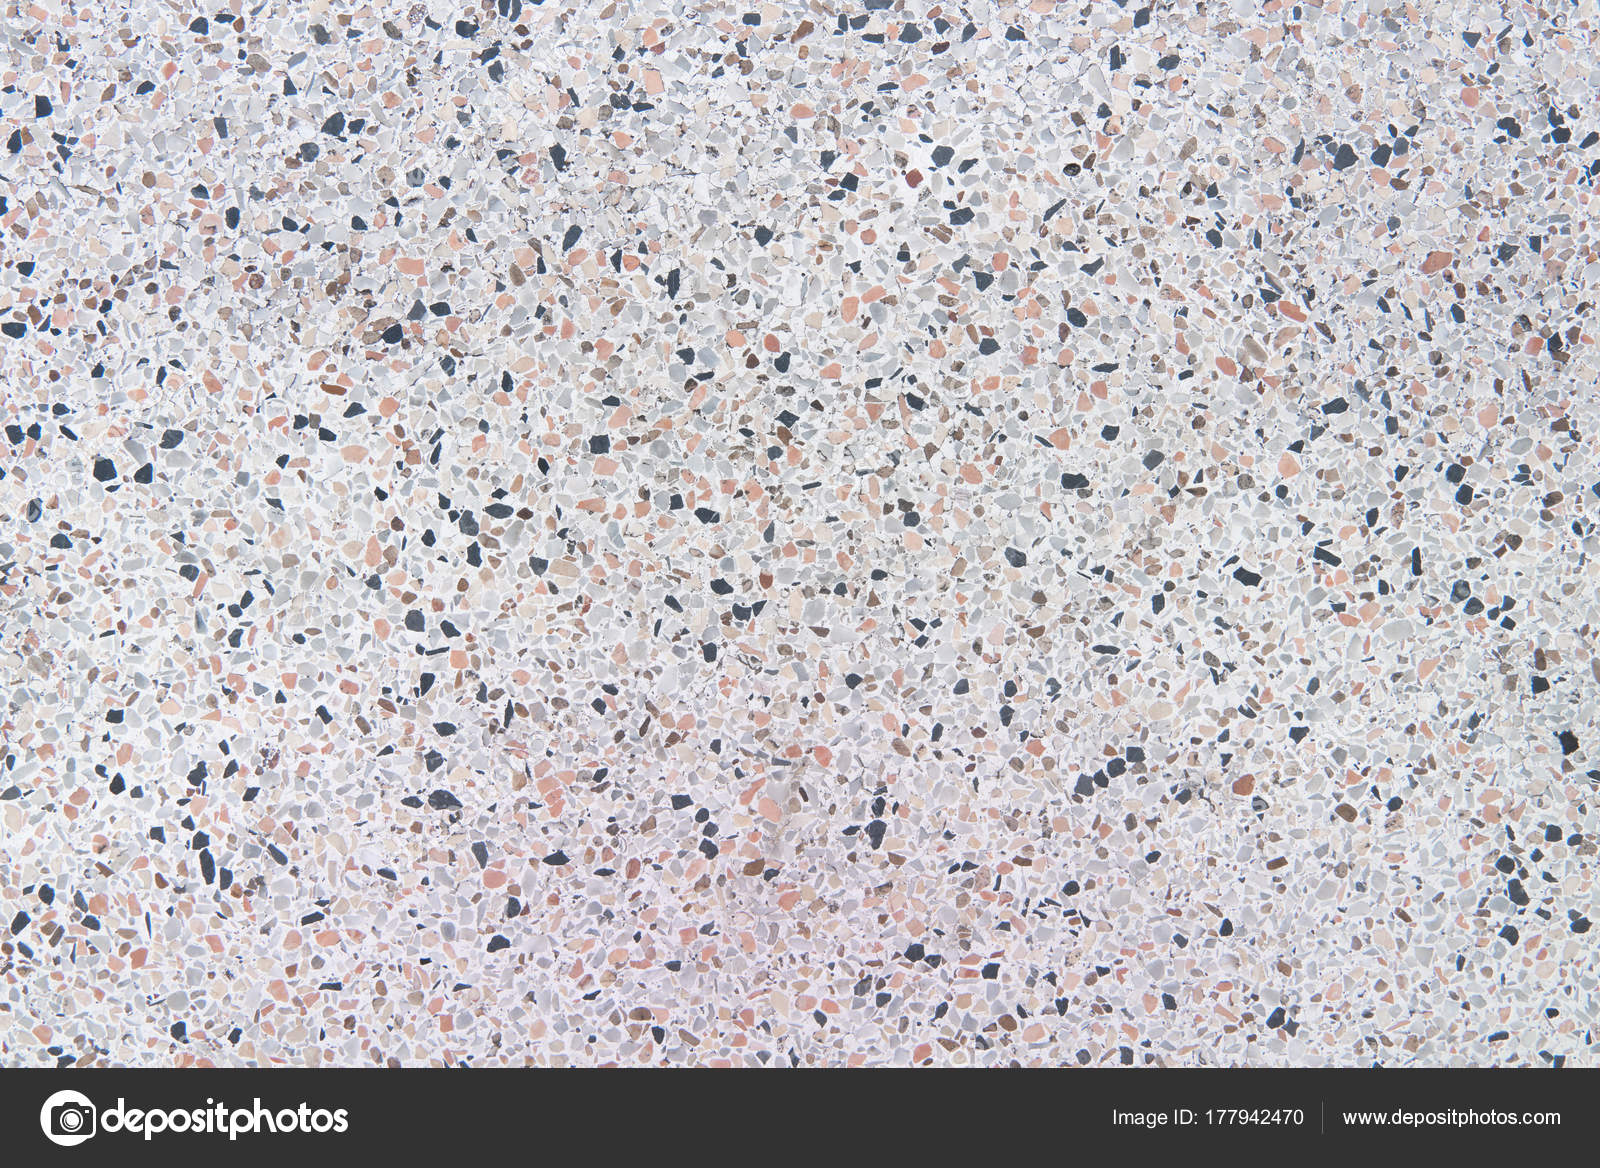 Polished Black Granite Texture Intended Terrazzo Floor Old Texture Or Polished Stone For Background Stock Photo Terrazzo